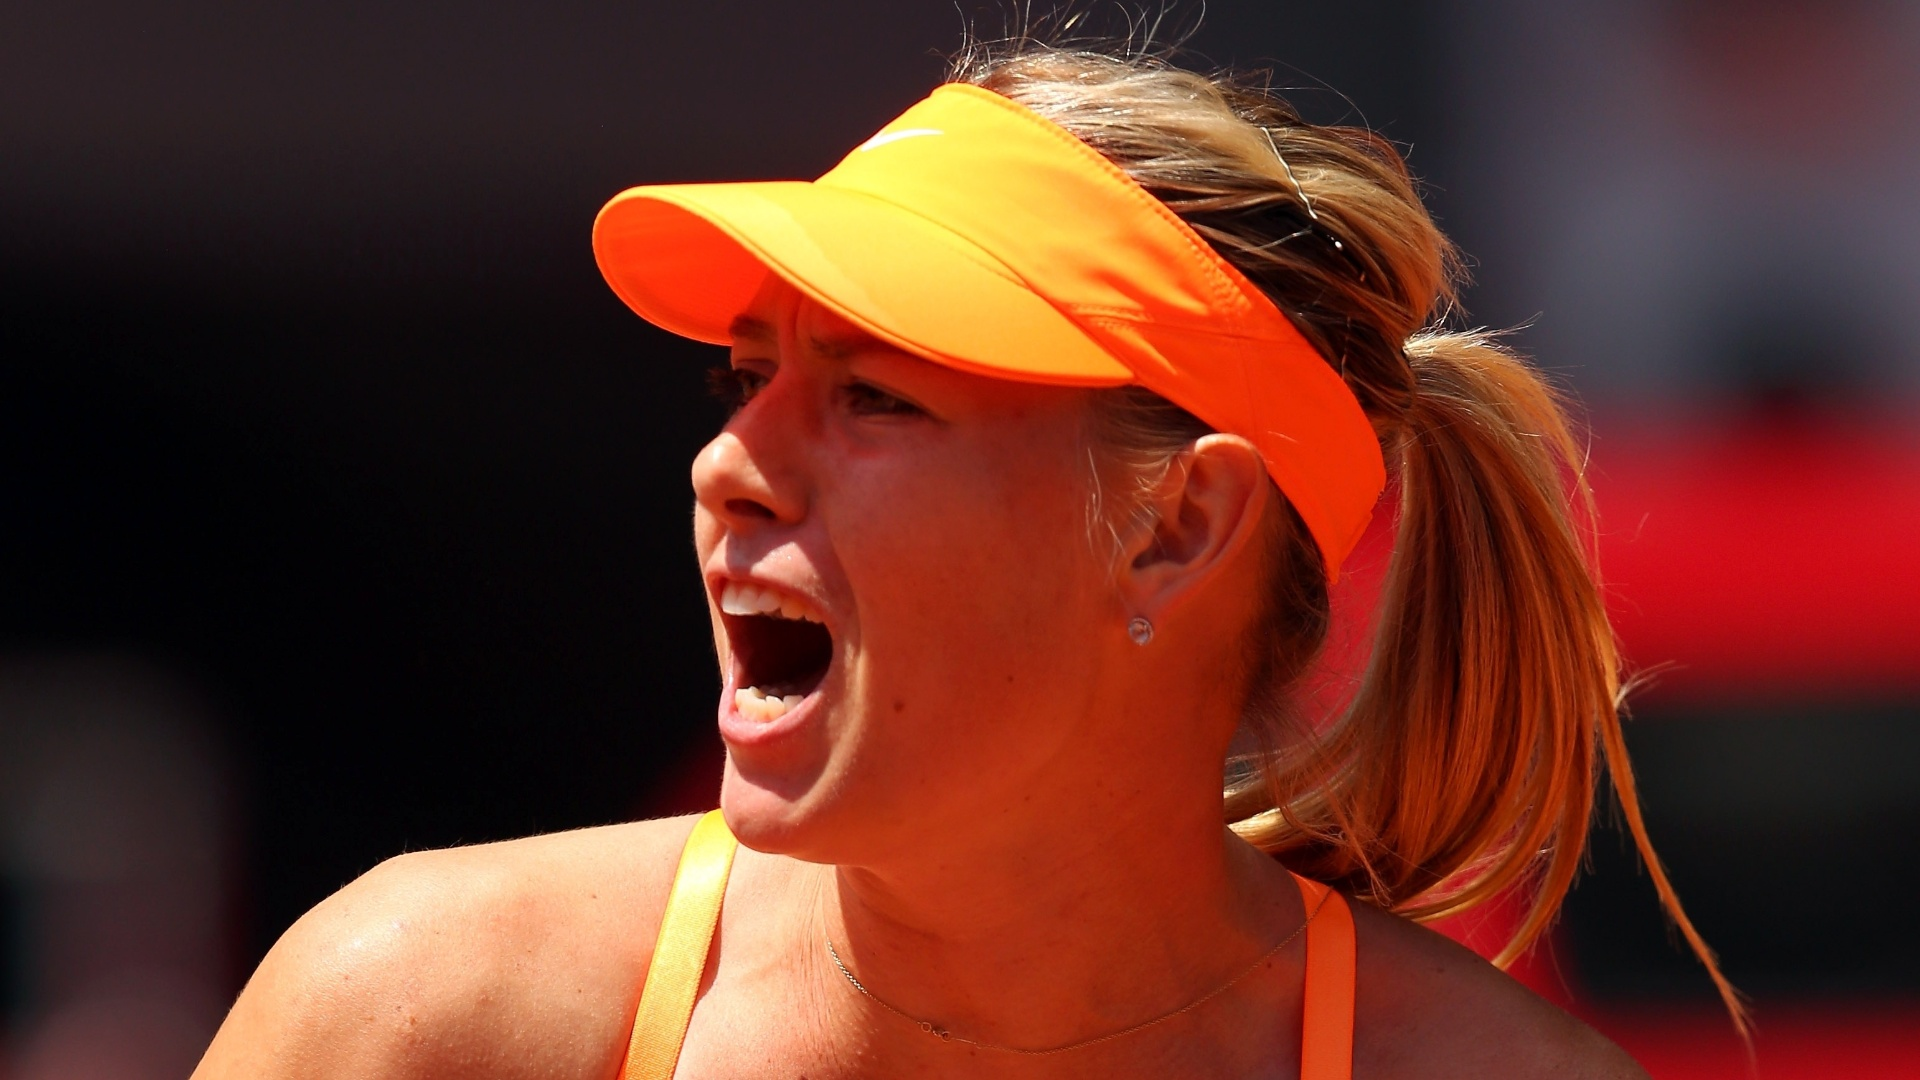 06.mai.2013 - Maria Sharapova vibra aps conquistar ponto na partida contra Alexandra Dulgheru pelo Torneio de Madri